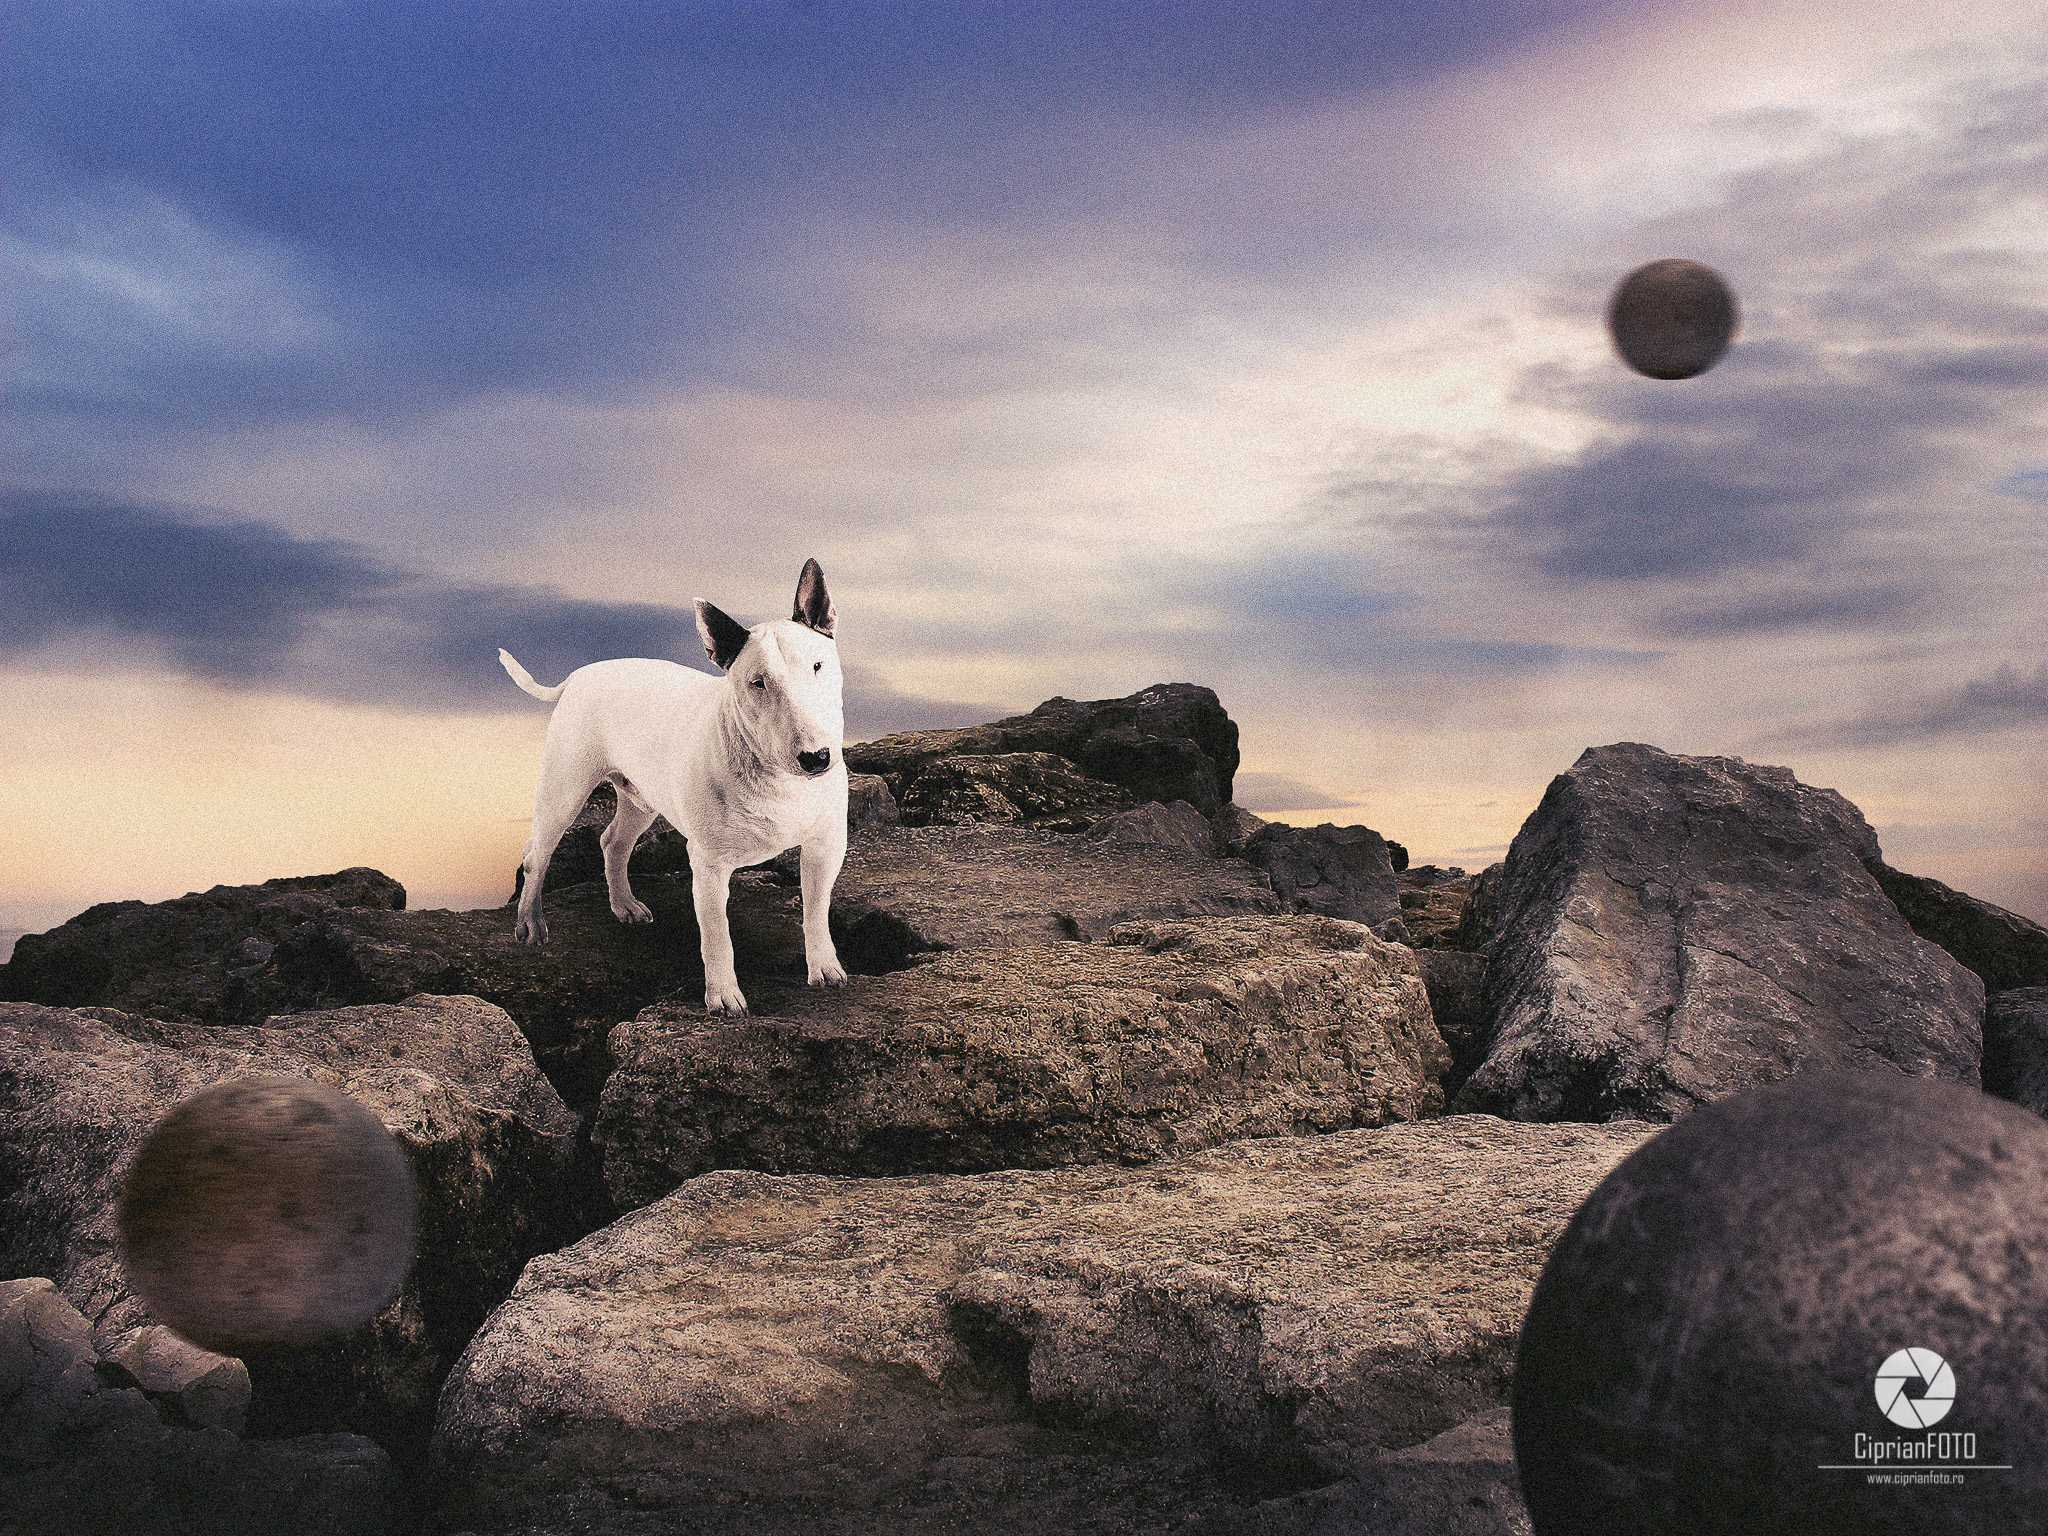 Bull Terrier Upon The Rock, Photoshop Manipulation Tutorial, CiprianFOTO